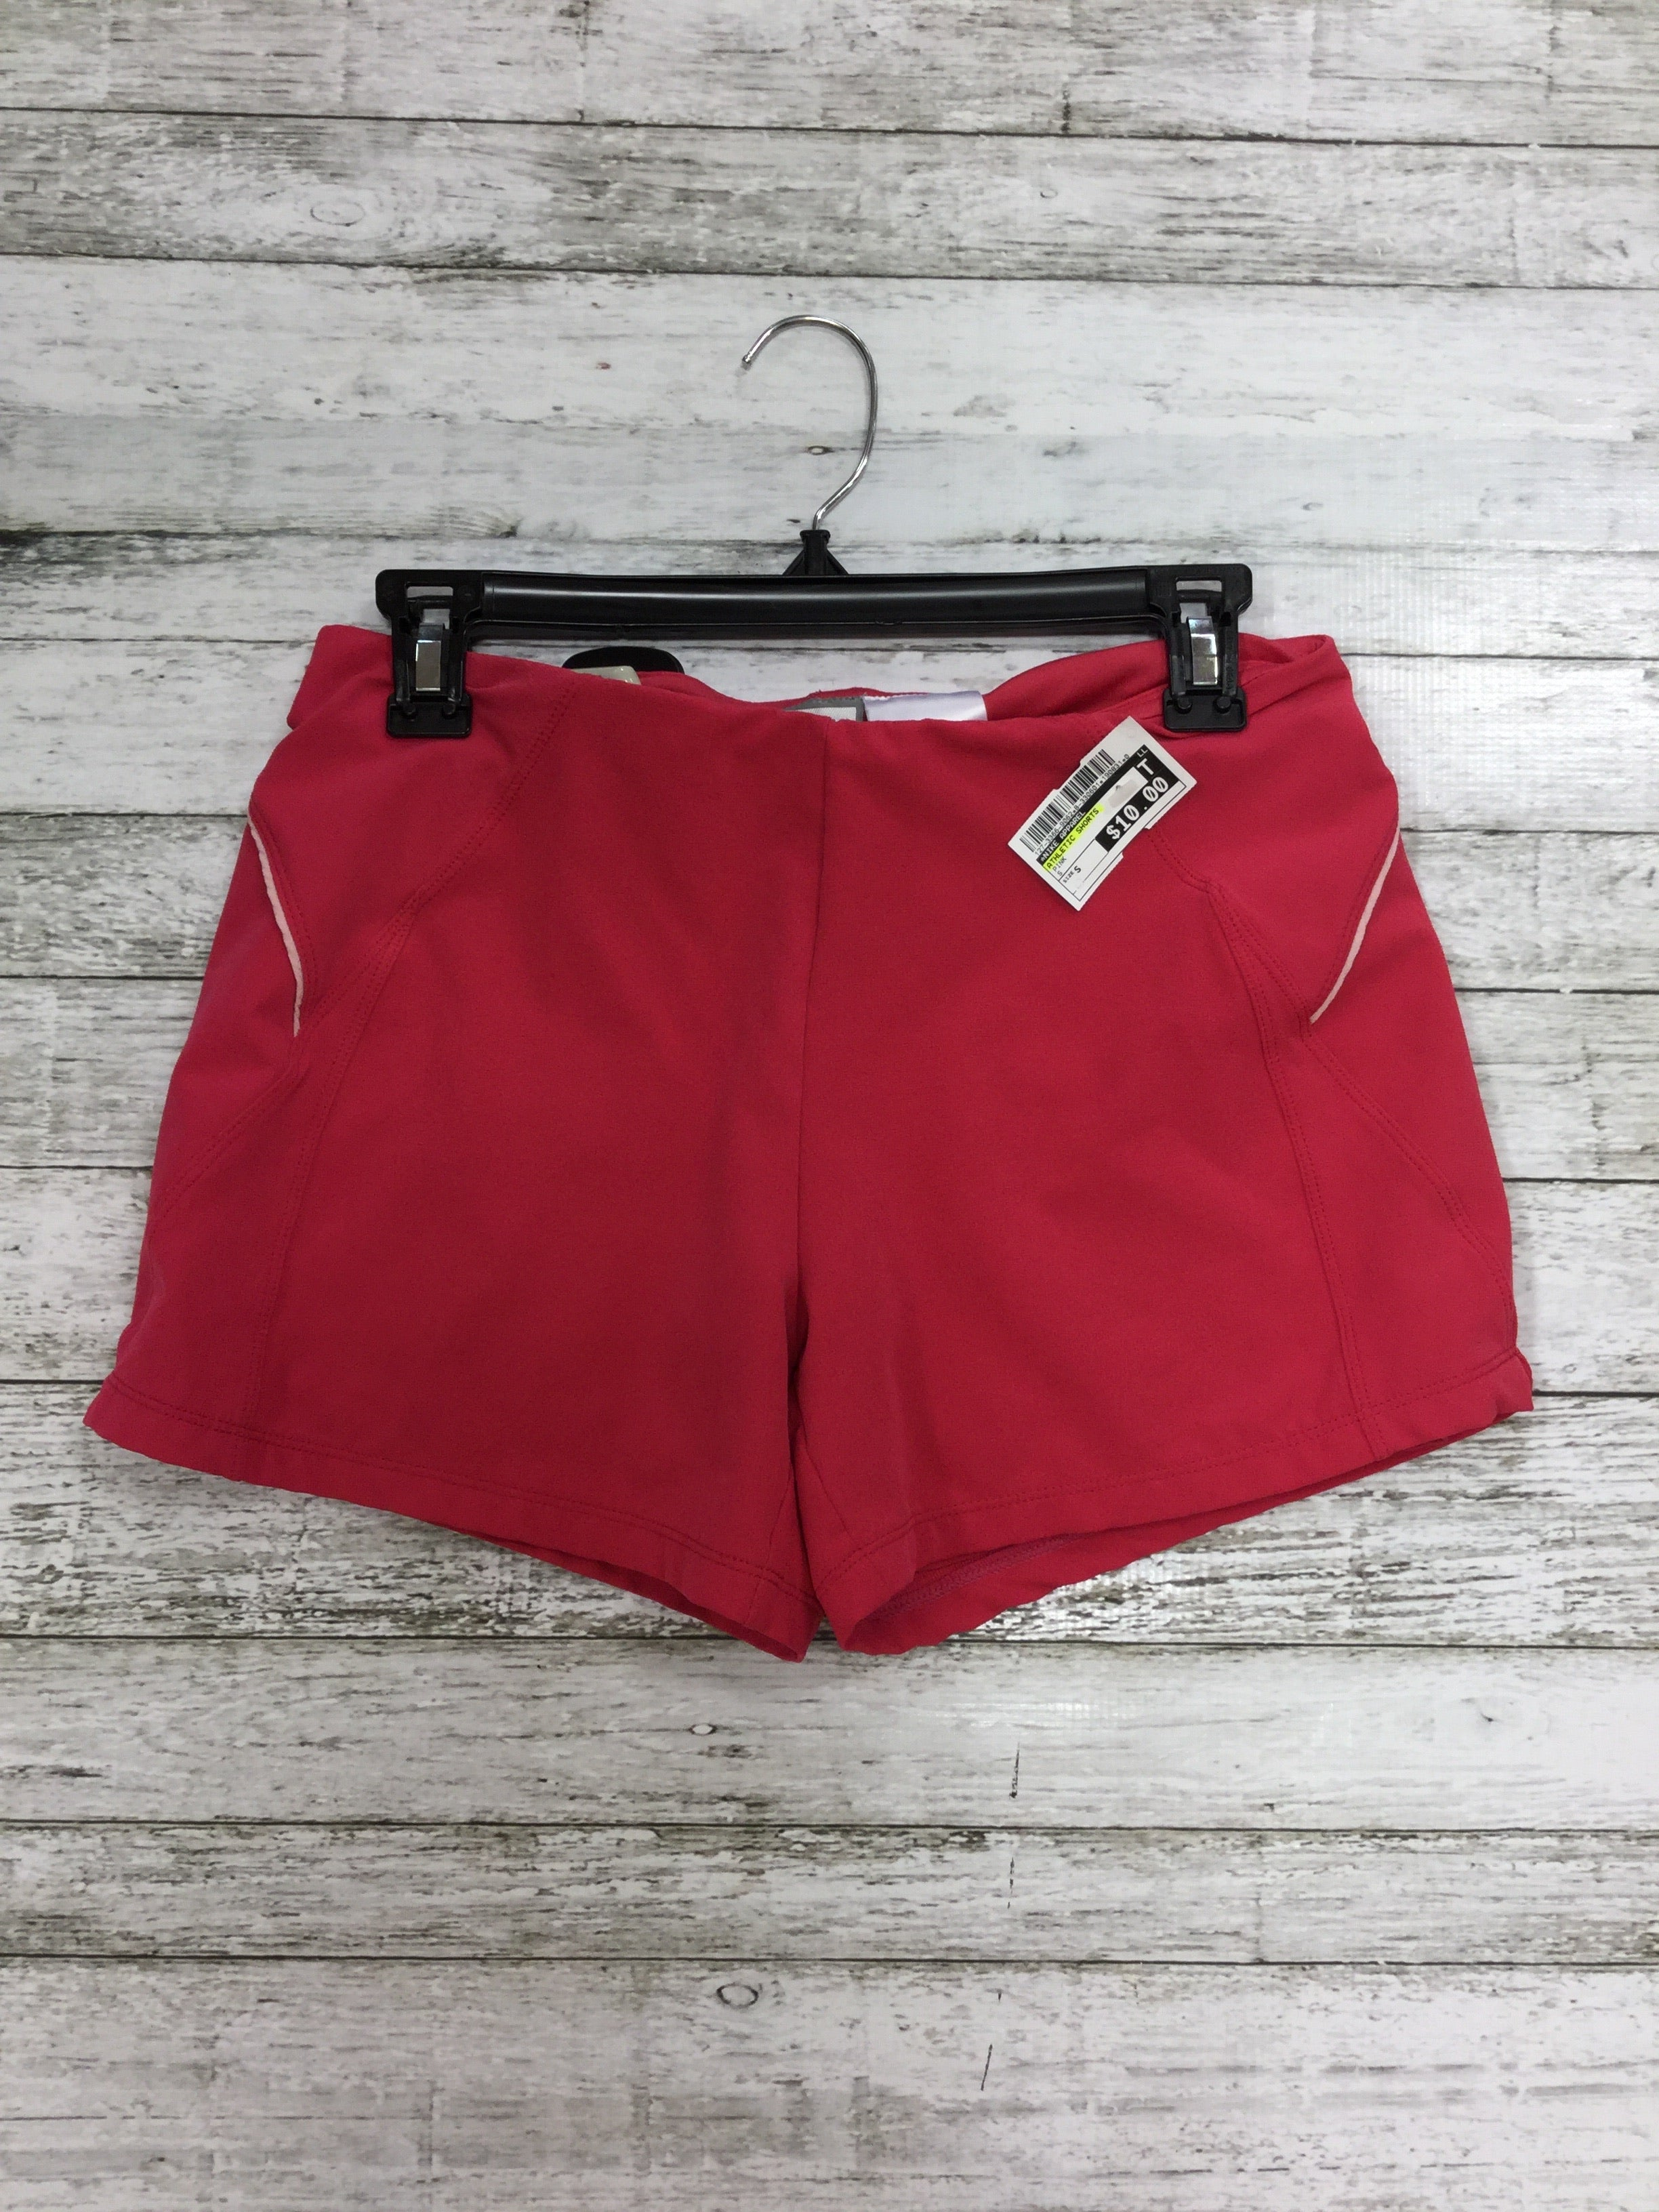 Primary Photo - BRAND: NIKE APPAREL , STYLE: ATHLETIC SHORTS , COLOR: PINK , SIZE: S , SKU: 127-3366-9062